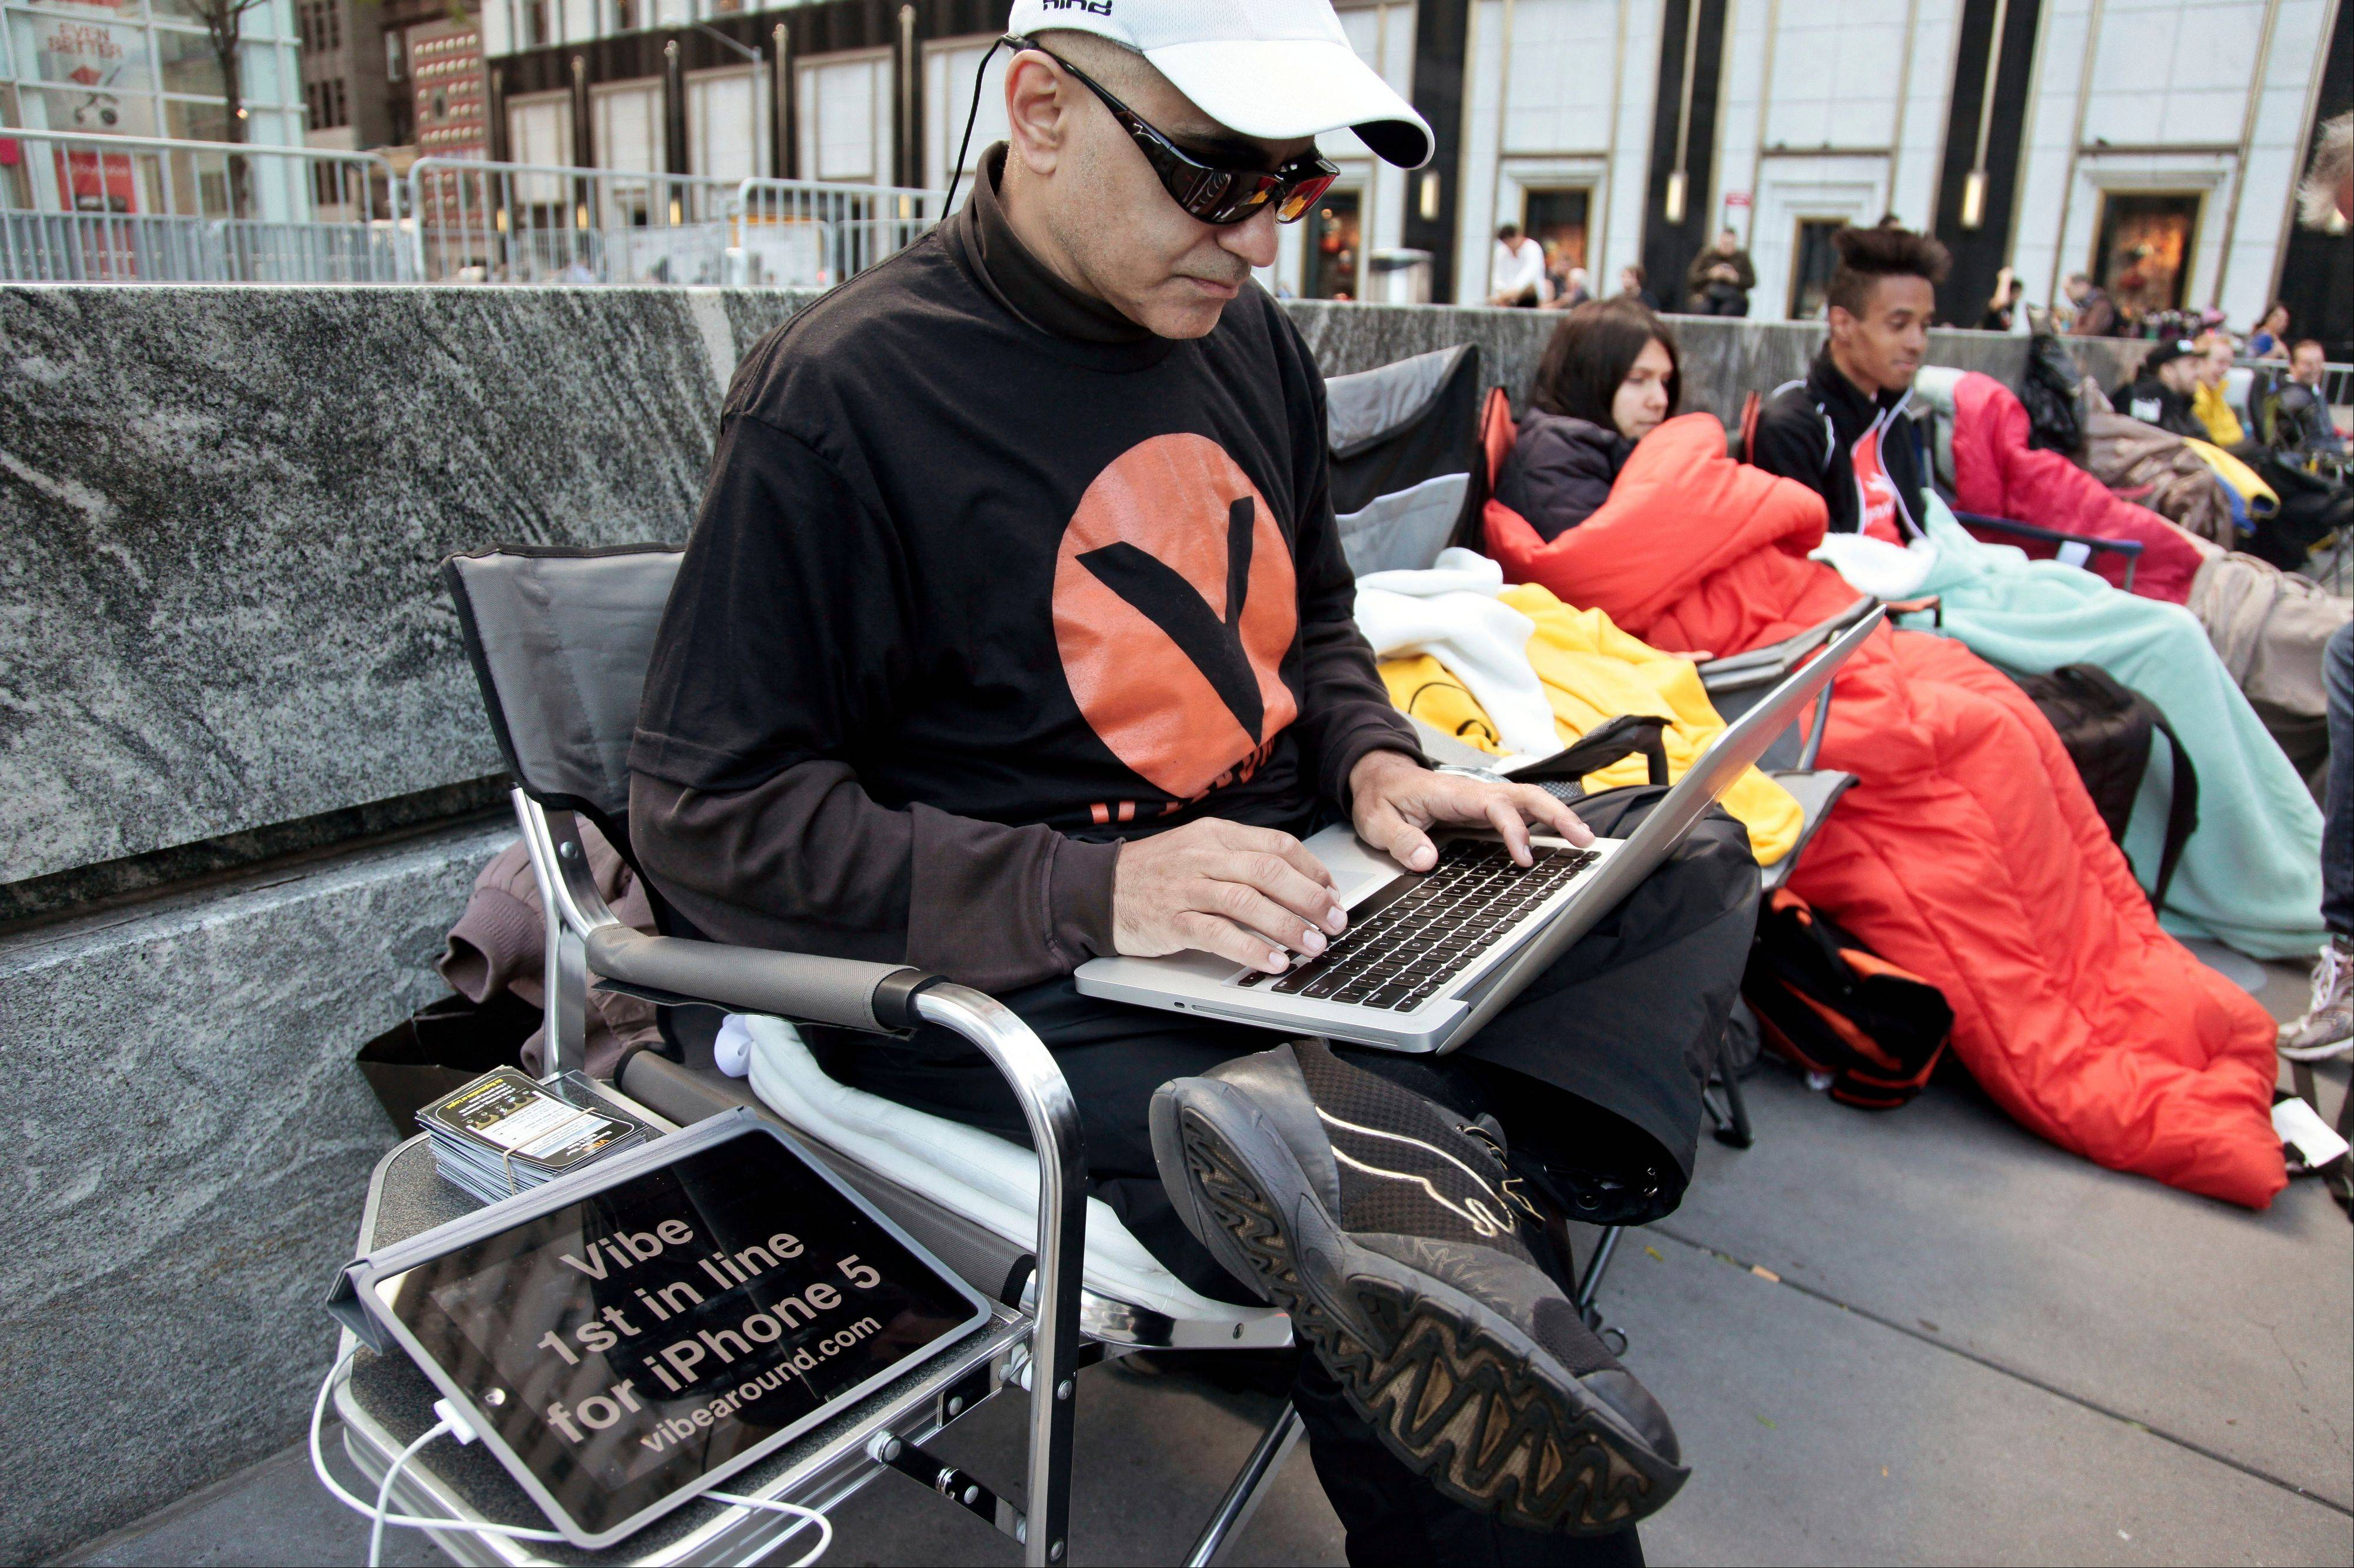 Hazen Sayer, an app developer, is first in line outside Apple's Fifth Avenue store on Thursday in New York. Sayer started camping out a week ago to be one of the first to get the new iPhone 5, which will go on sale in the U.S. and eight other countries Friday.